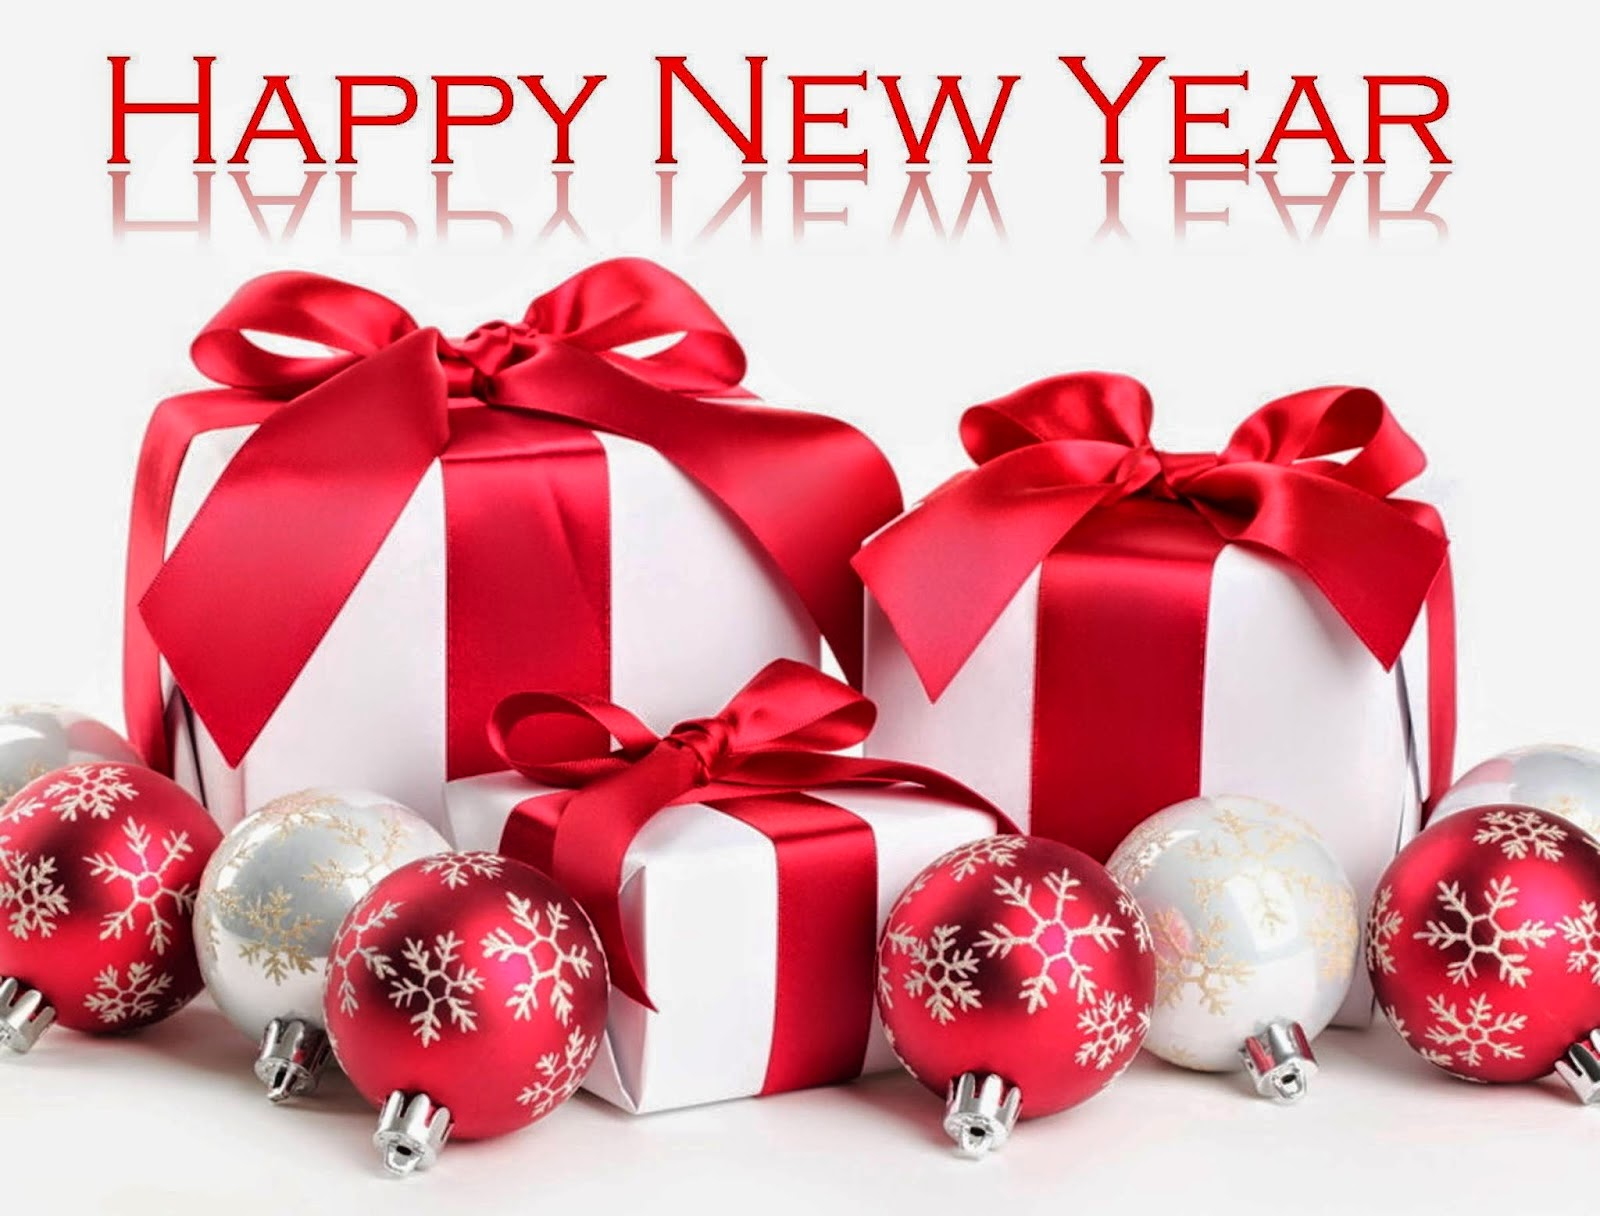 Happy New Year Graphics Free For